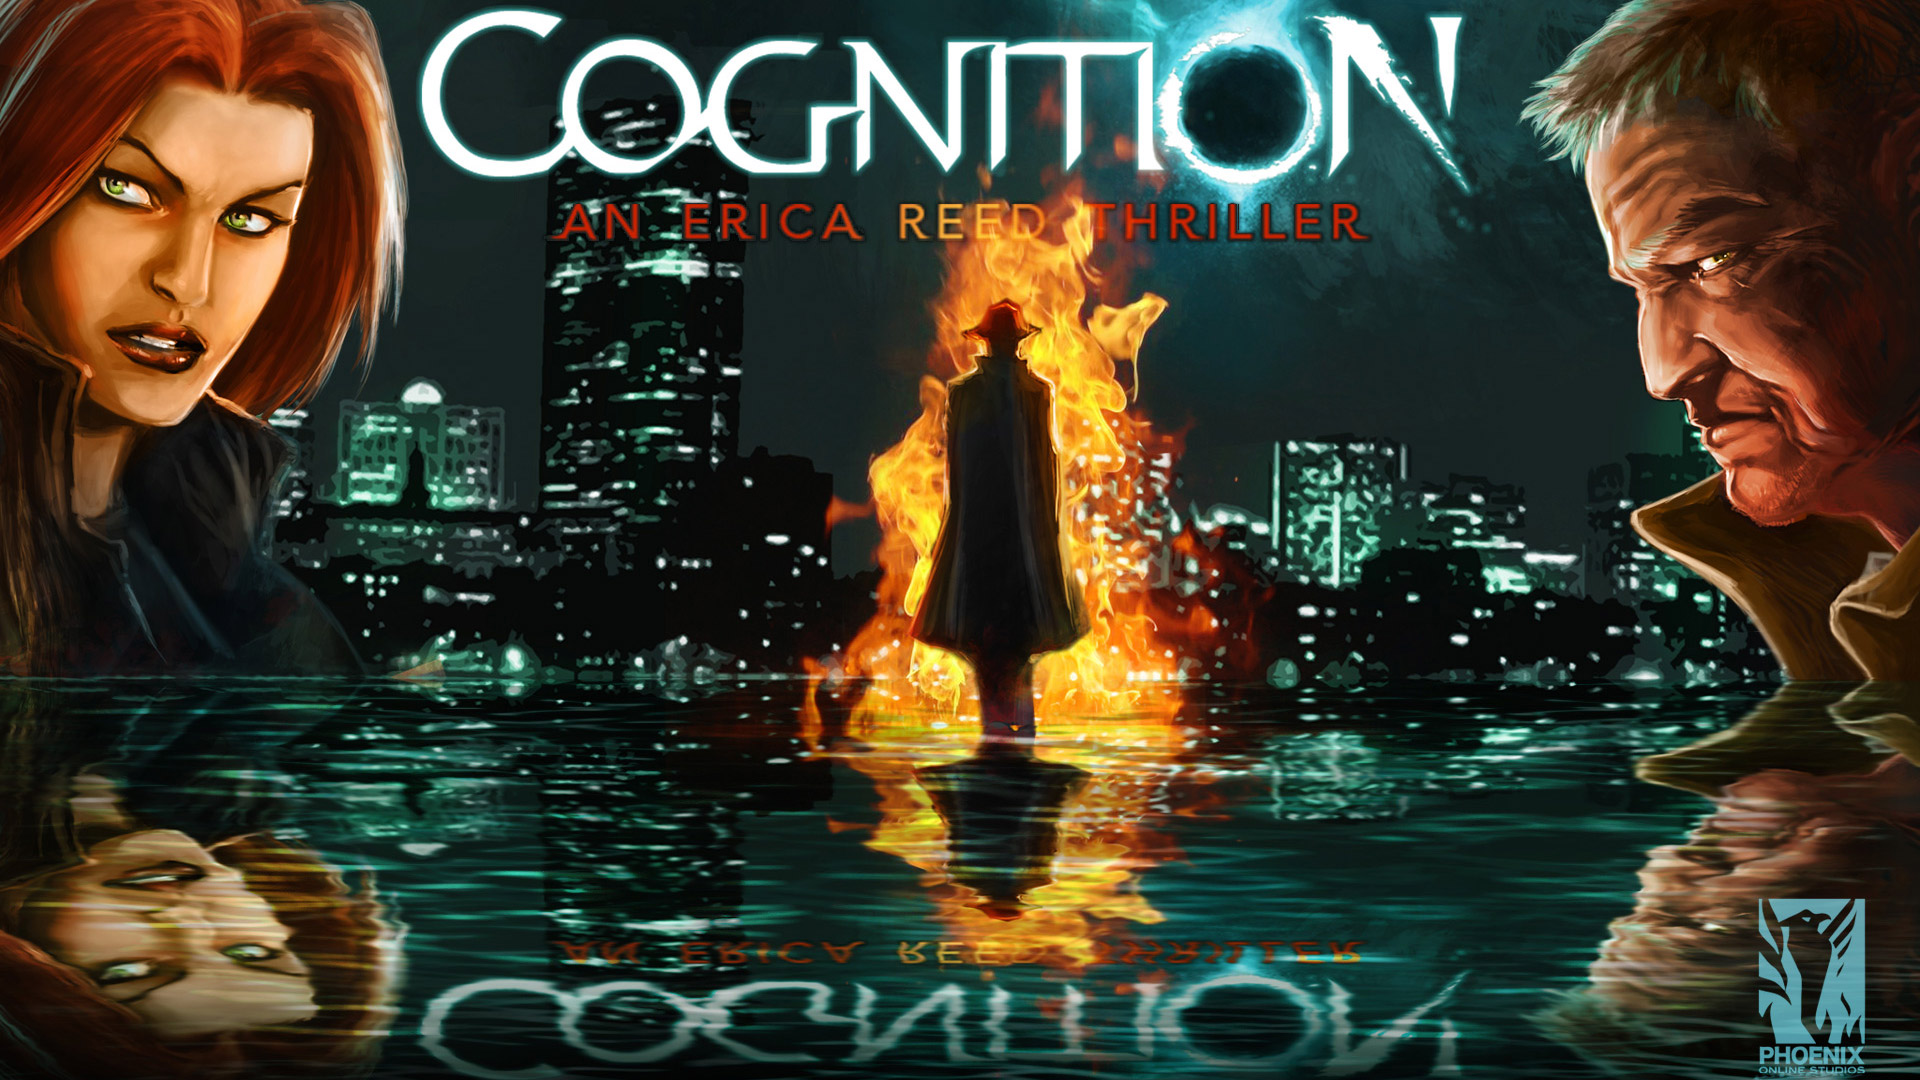 Free Cognition: An Erica Reed Thriller Wallpaper in 1920x1080